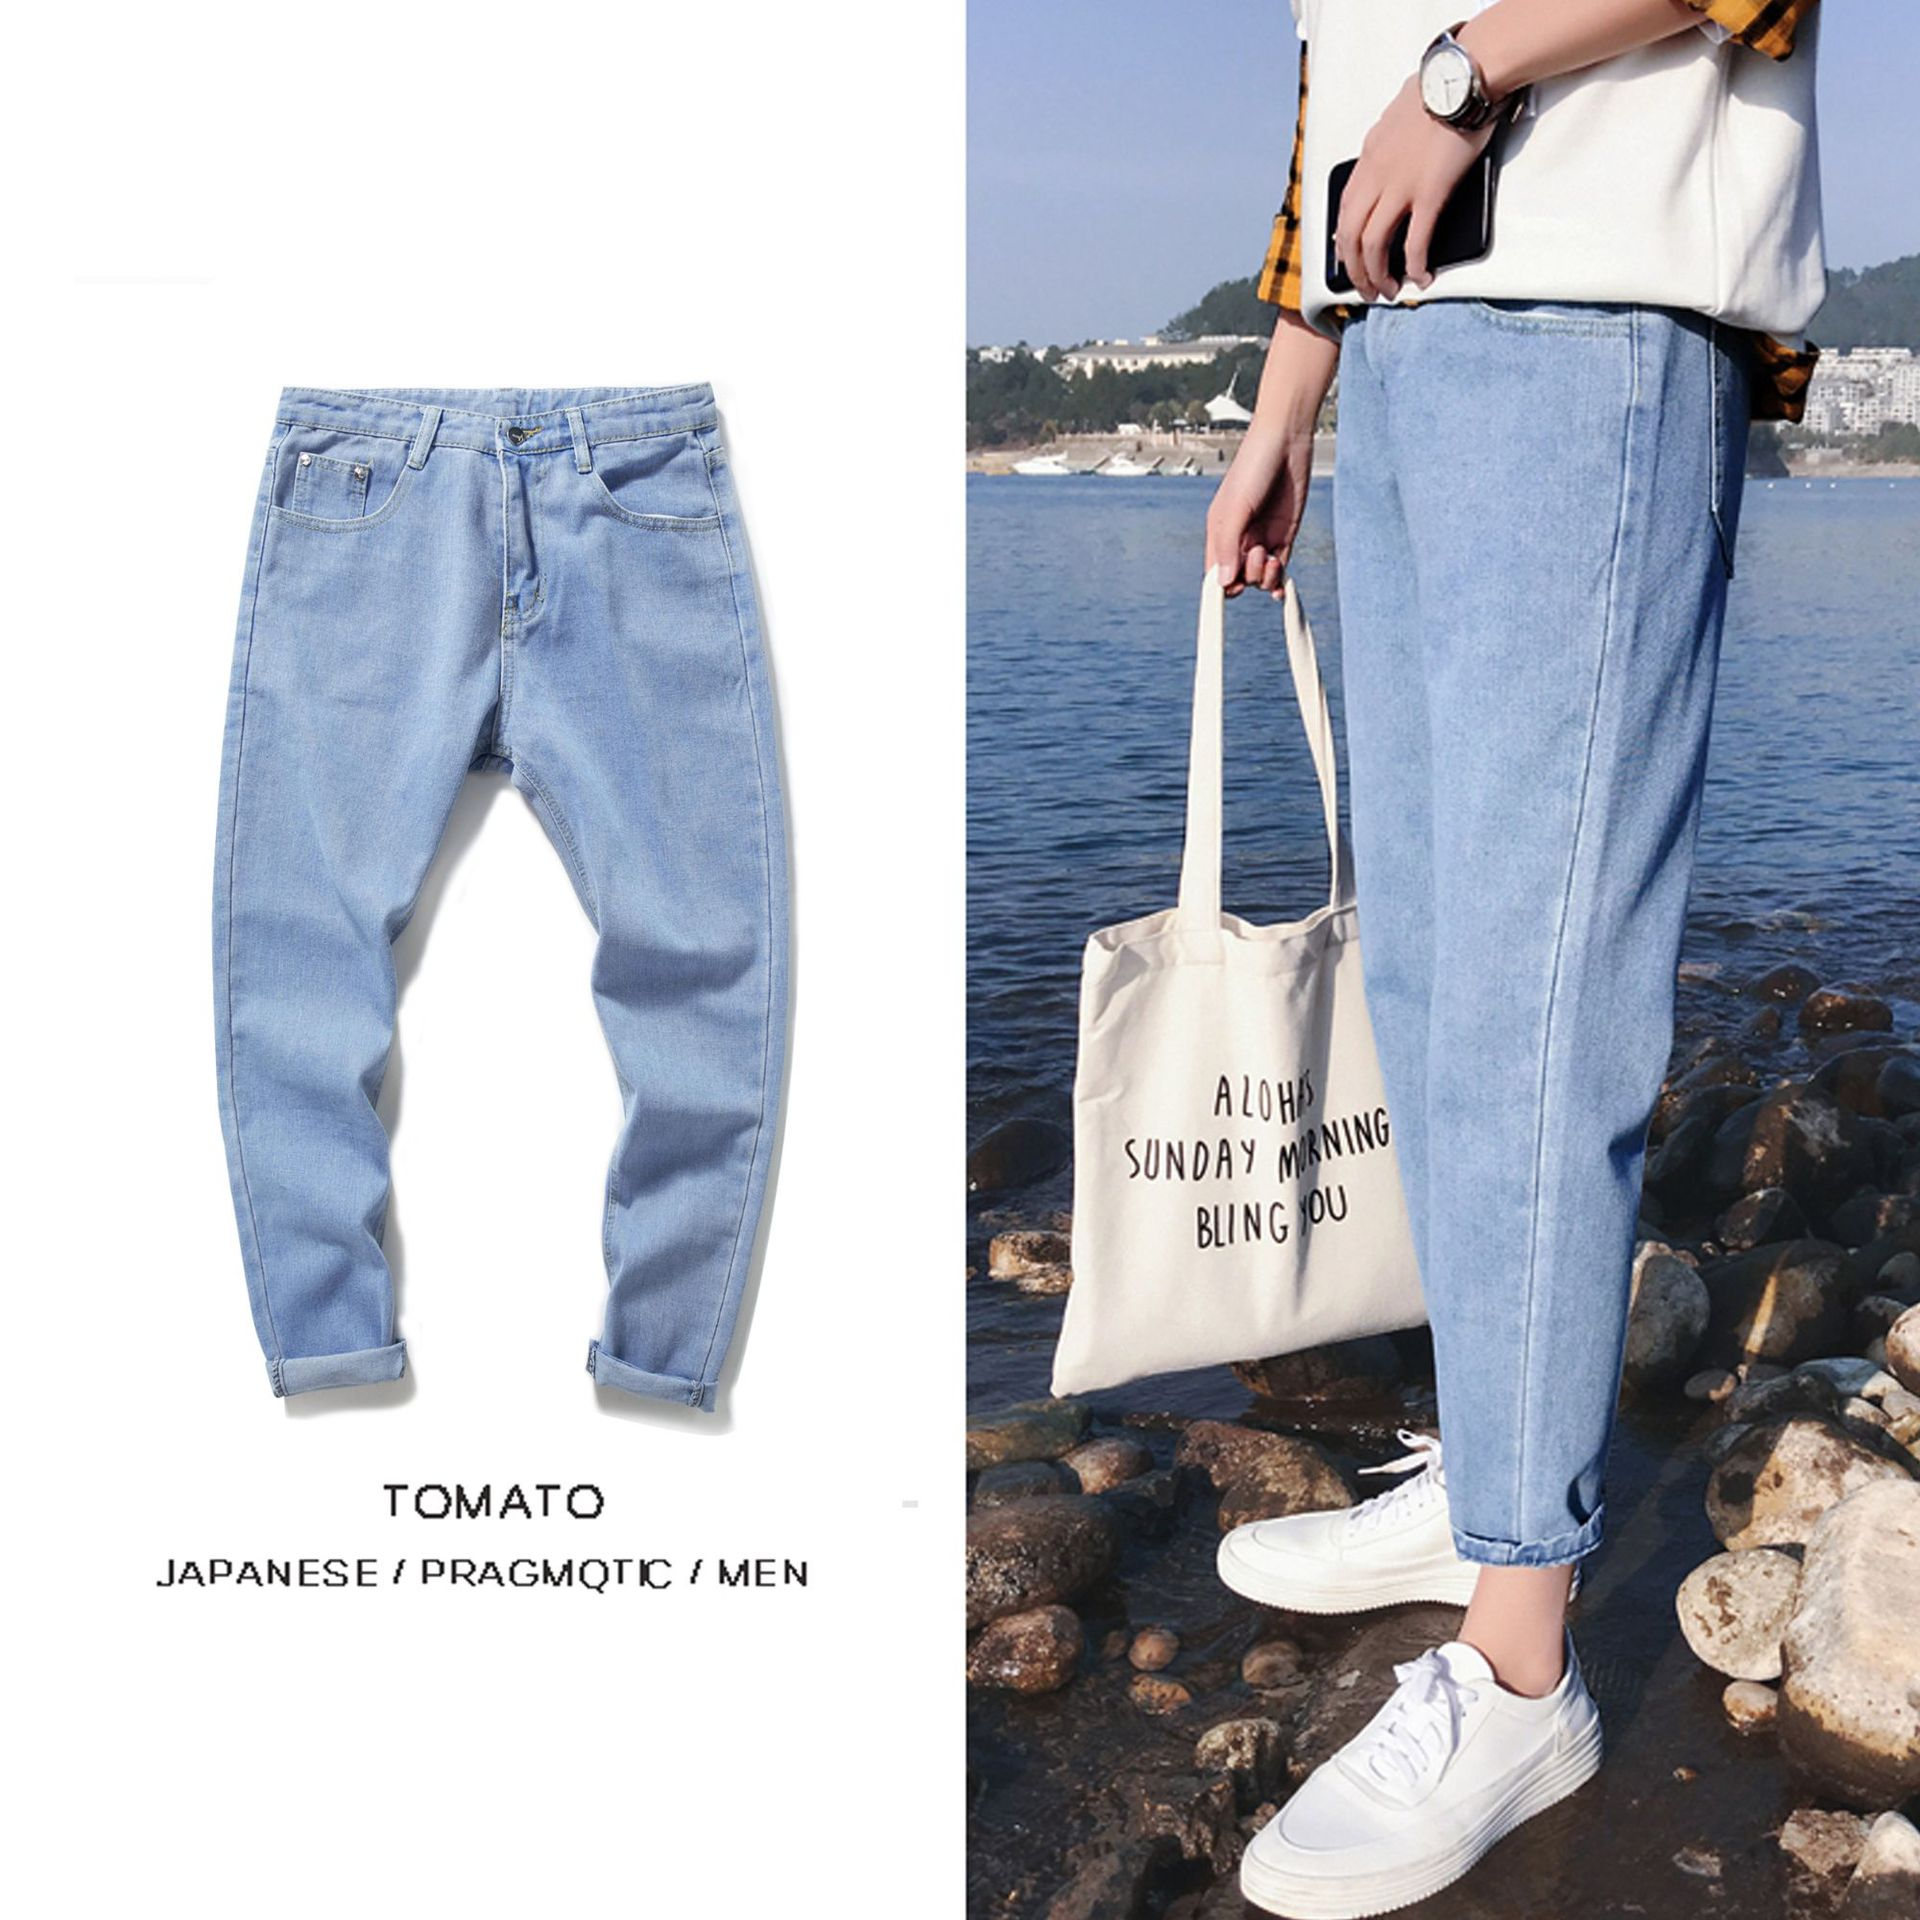 Jeans Men's Autumn Clothing New Style Washing Capri Pants Korean-style Fashion Casual Skinny MEN'S Pants